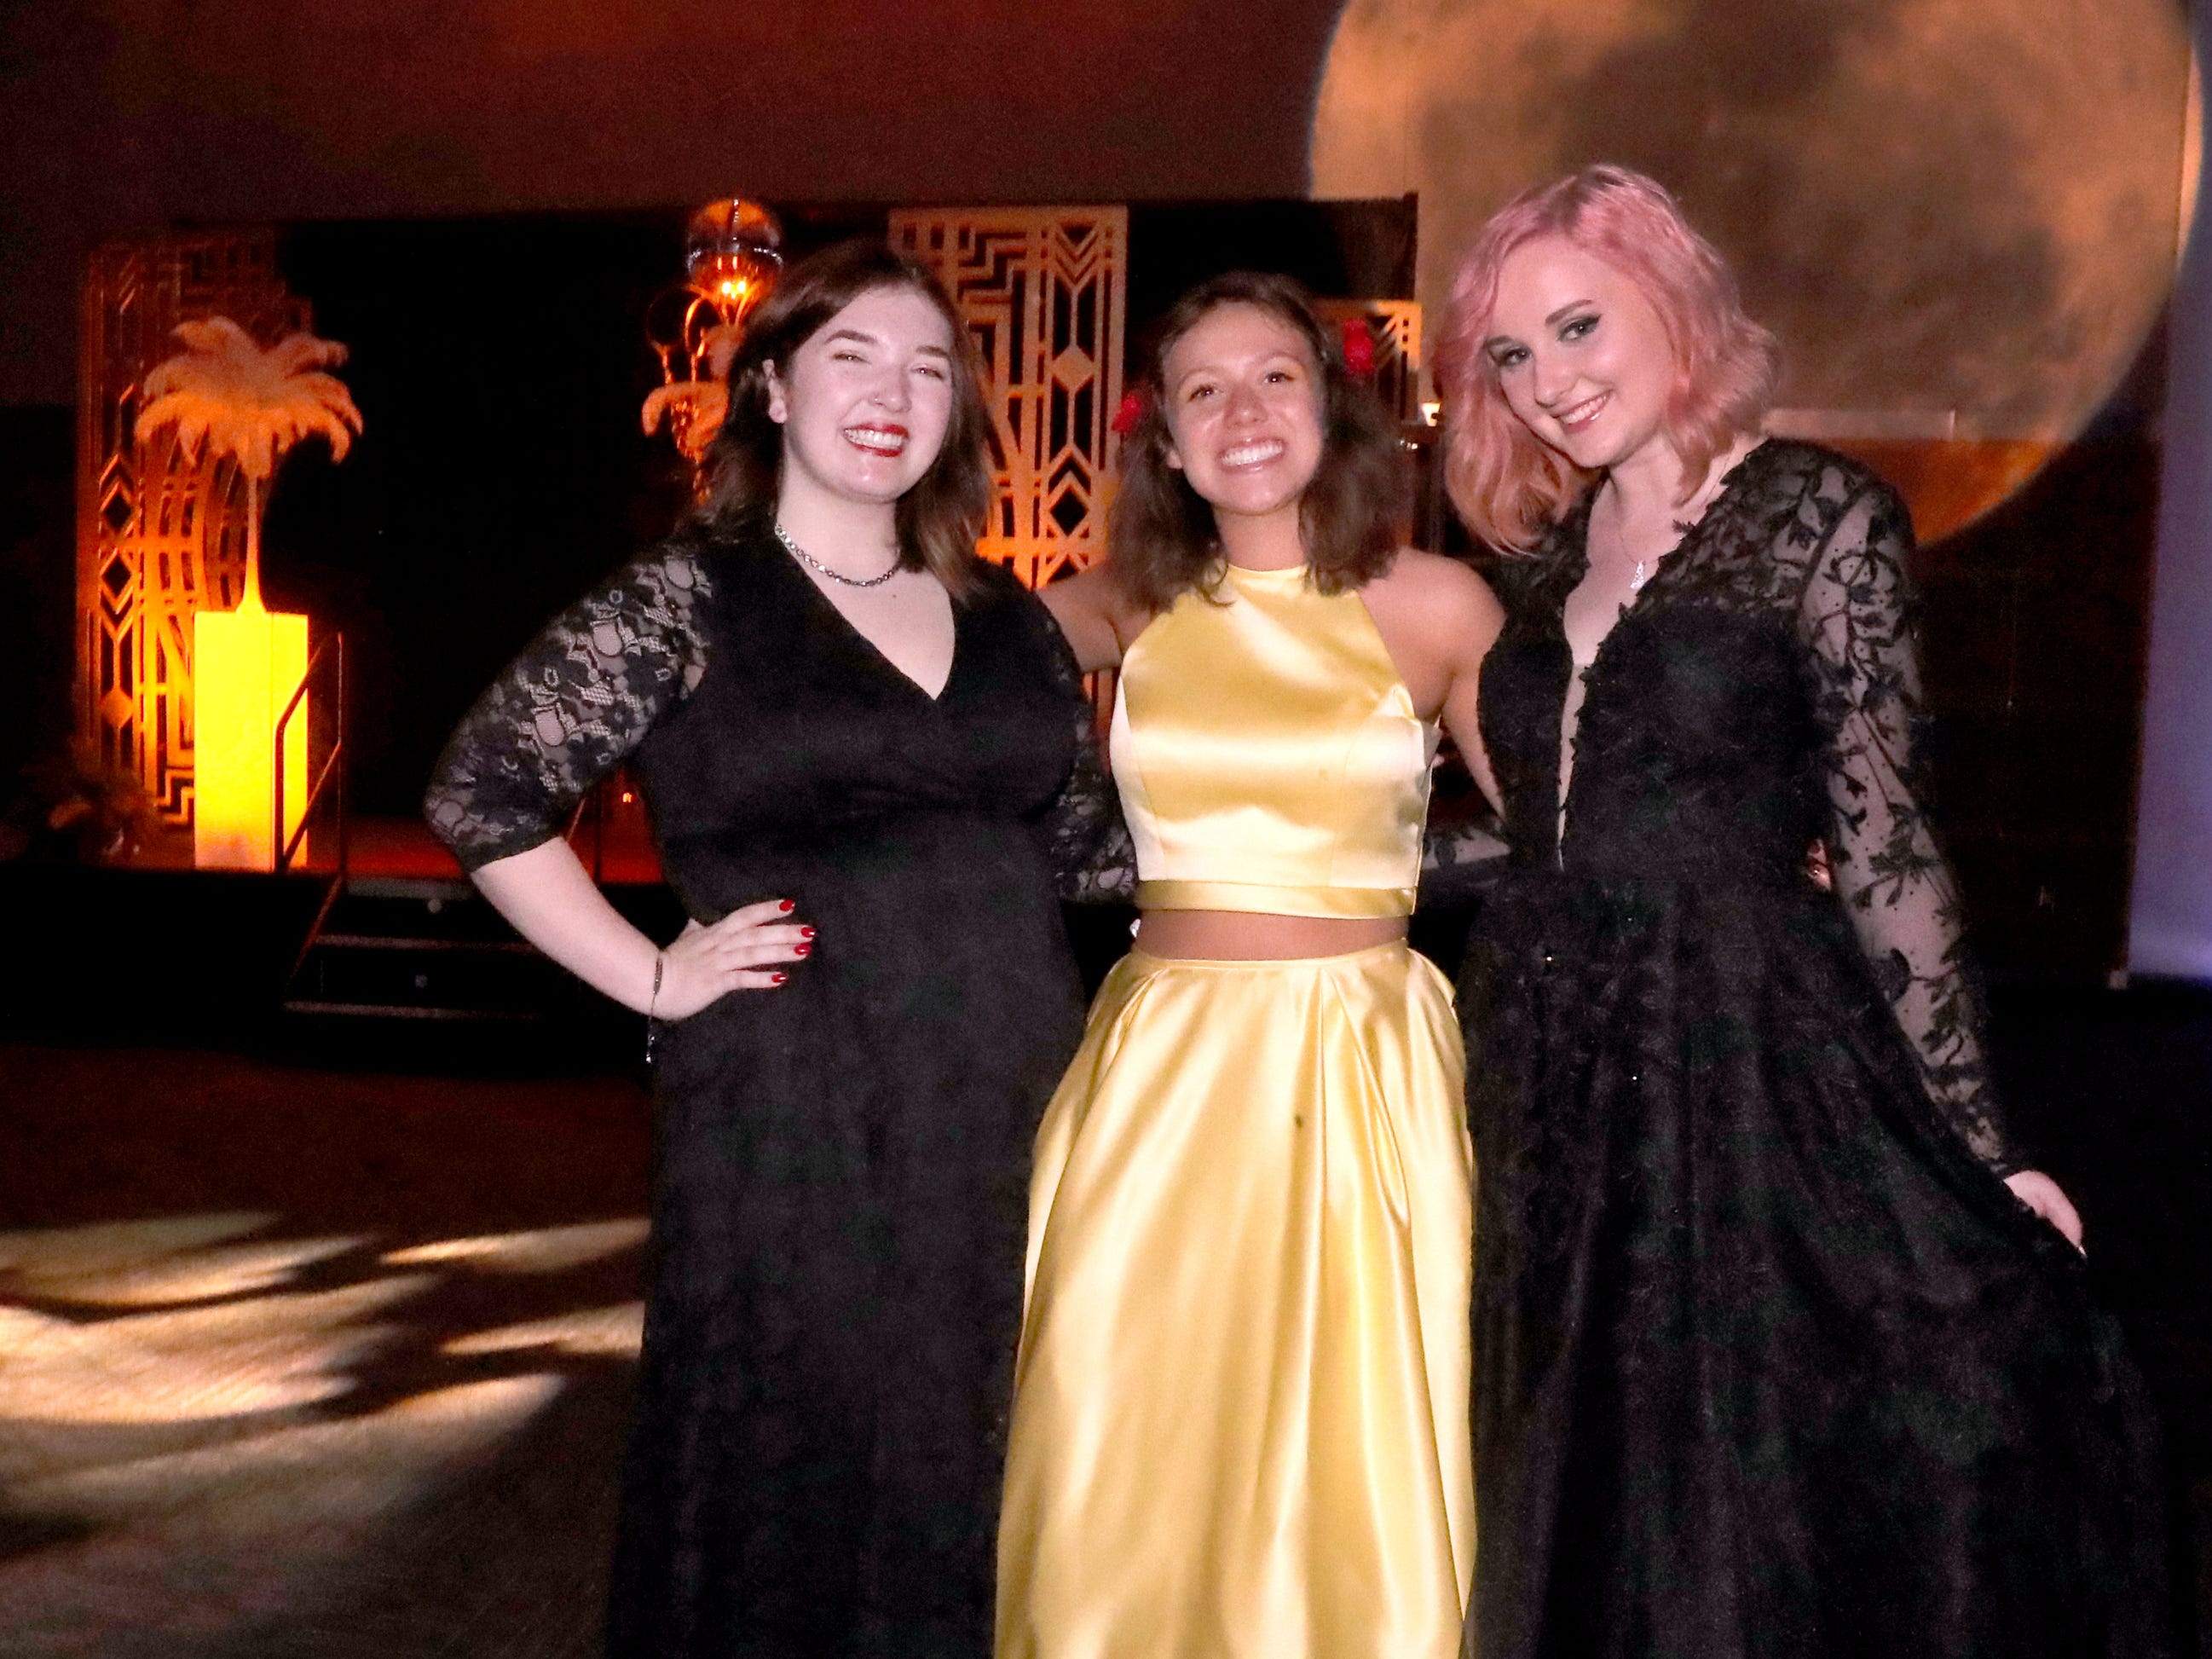 Emma Khake, left, Sage Johnson, center and Abby Crawford, right at Blackman's prom on Friday April 12, 2019, at MTSU.